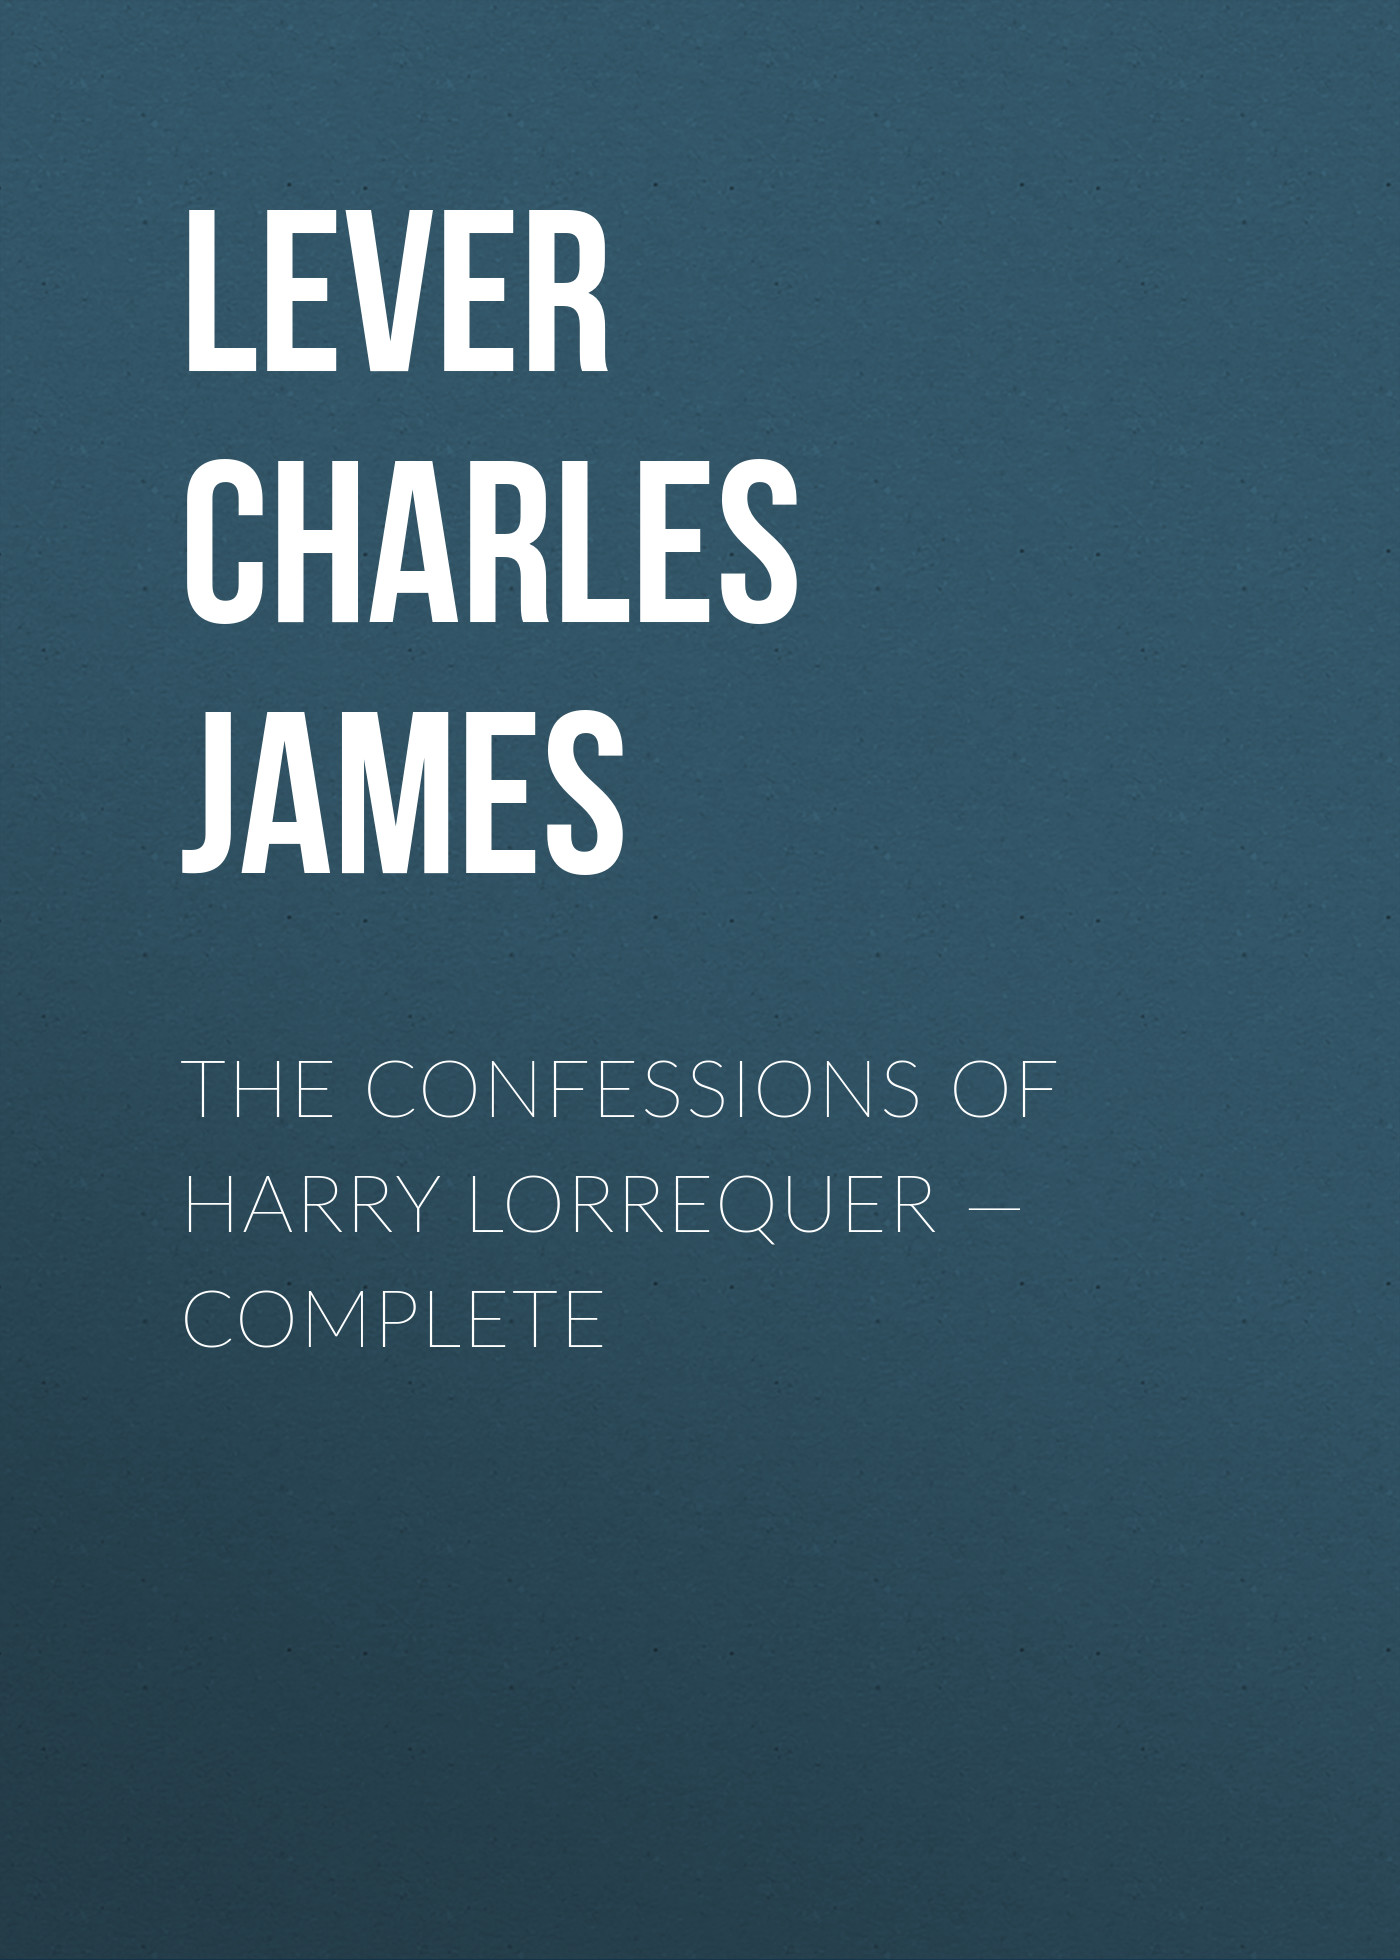 Lever Charles James The Confessions of Harry Lorrequer – Complete недорого